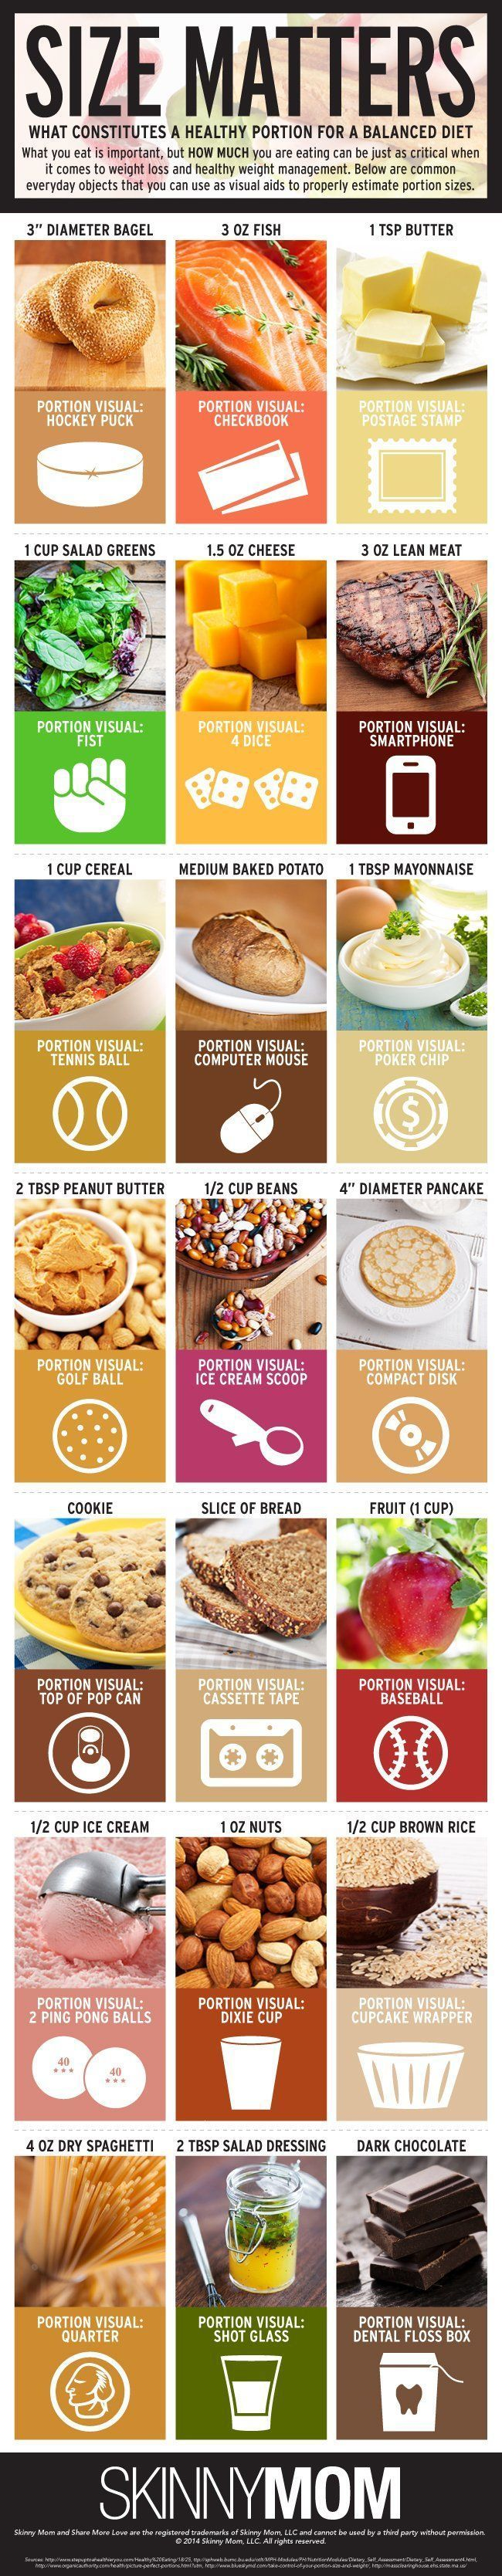 Food Proportions good for you or not if you re eating too much